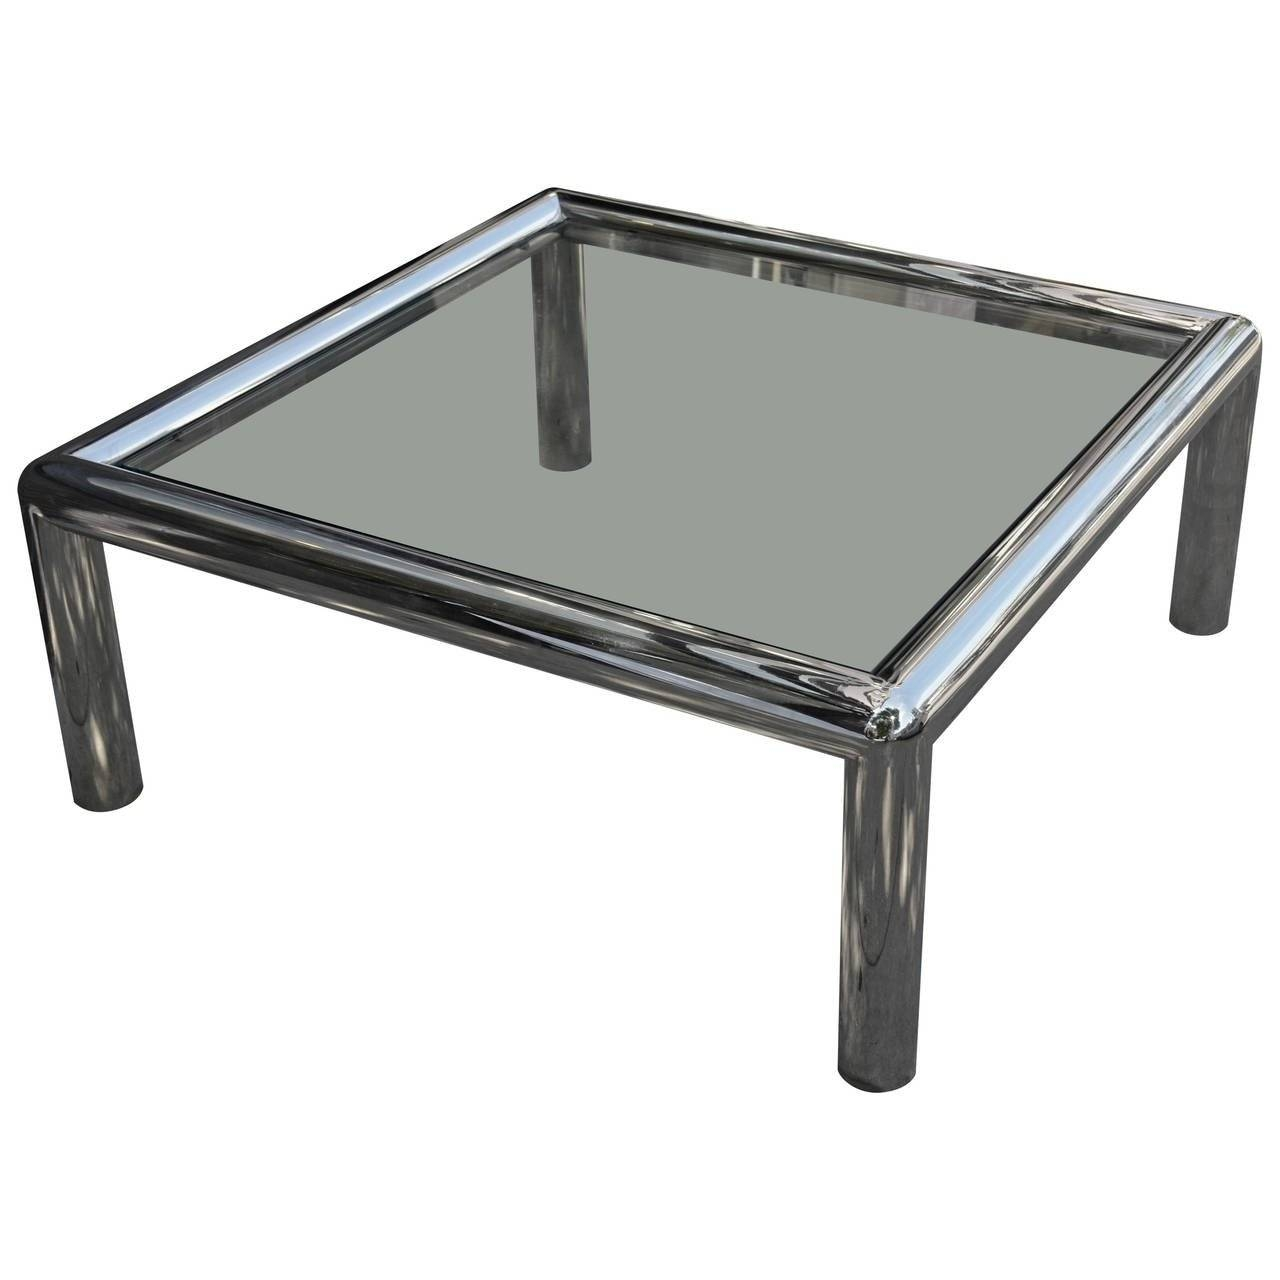 Large-Scale Vintage Tubular Chrome Coffee Table At 1Stdibs inside Chrome Coffee Tables (Image 18 of 30)